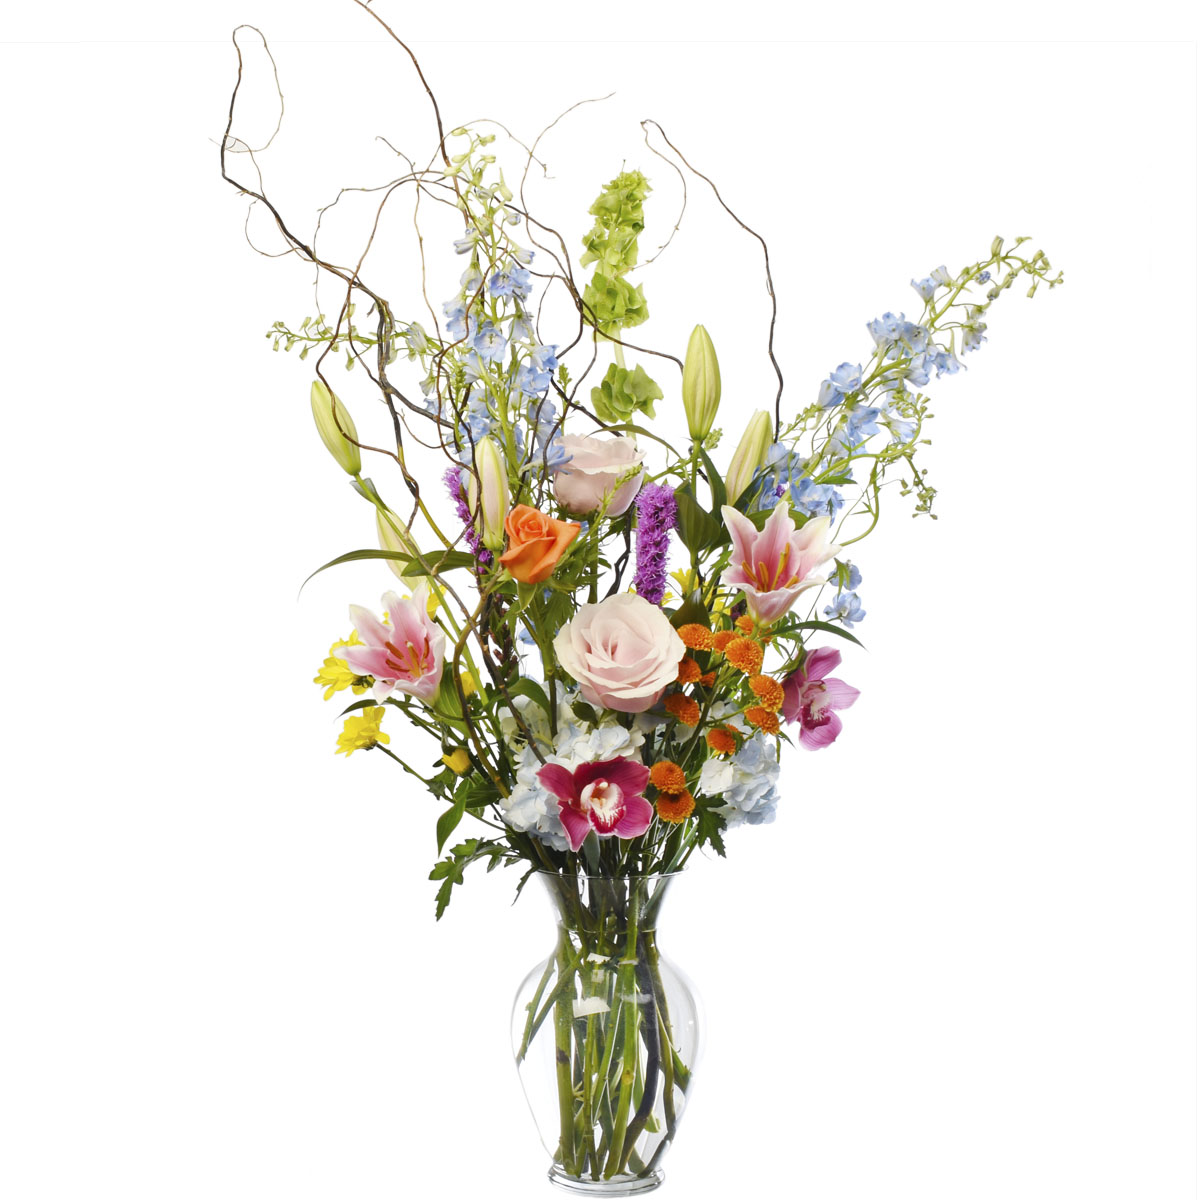 Mom's day beautiful flower bouquet delivery Vancouver, Burnaby & Coquitlam from Adele Rae Florist.